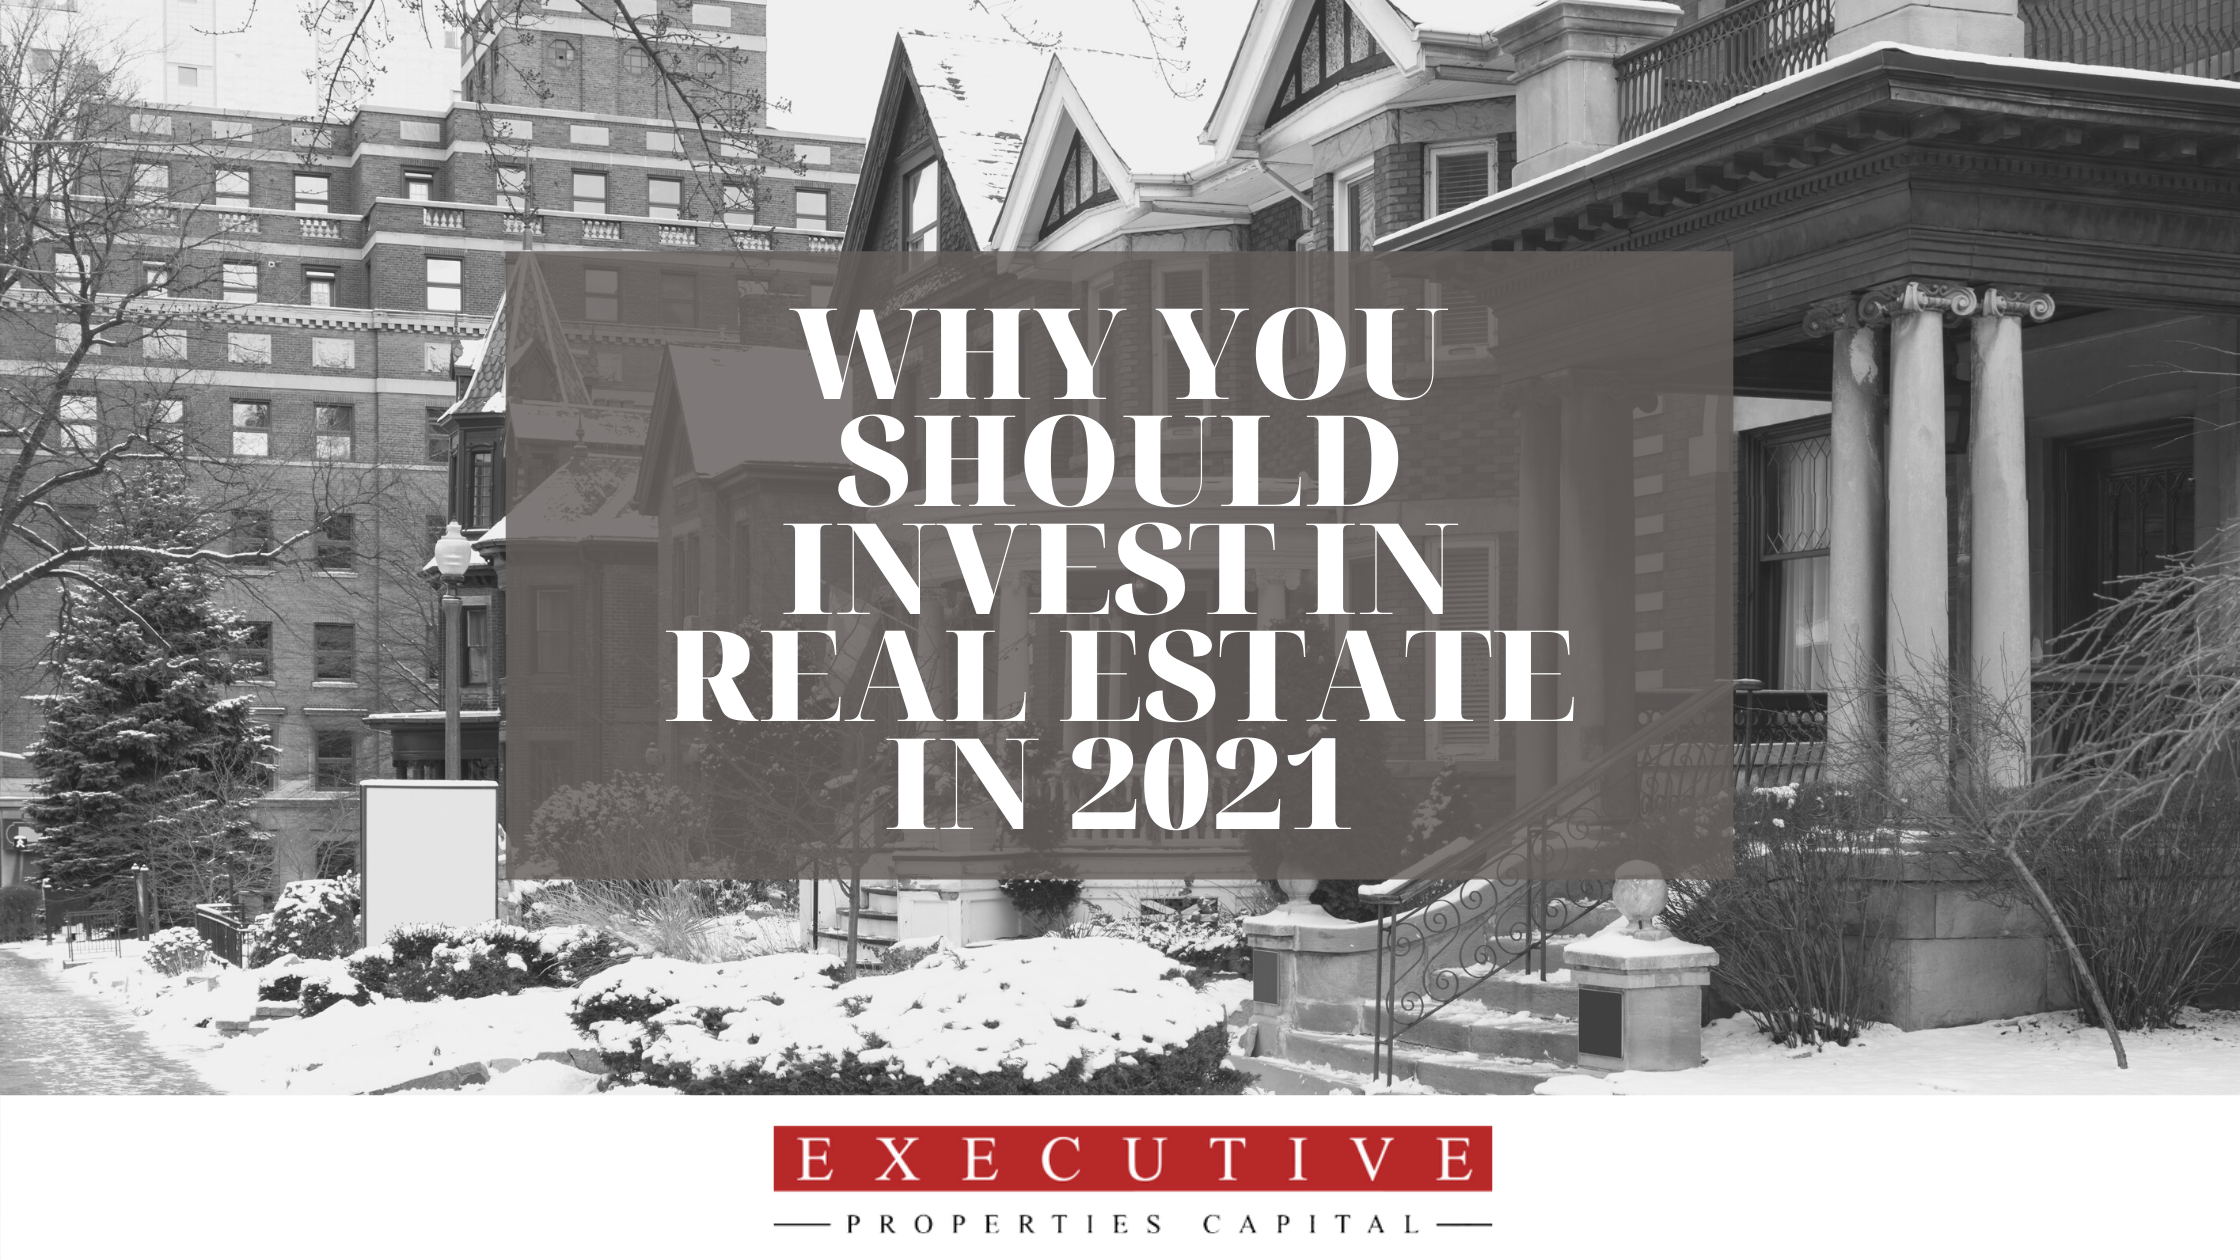 Why you should invest in realestate in 2021